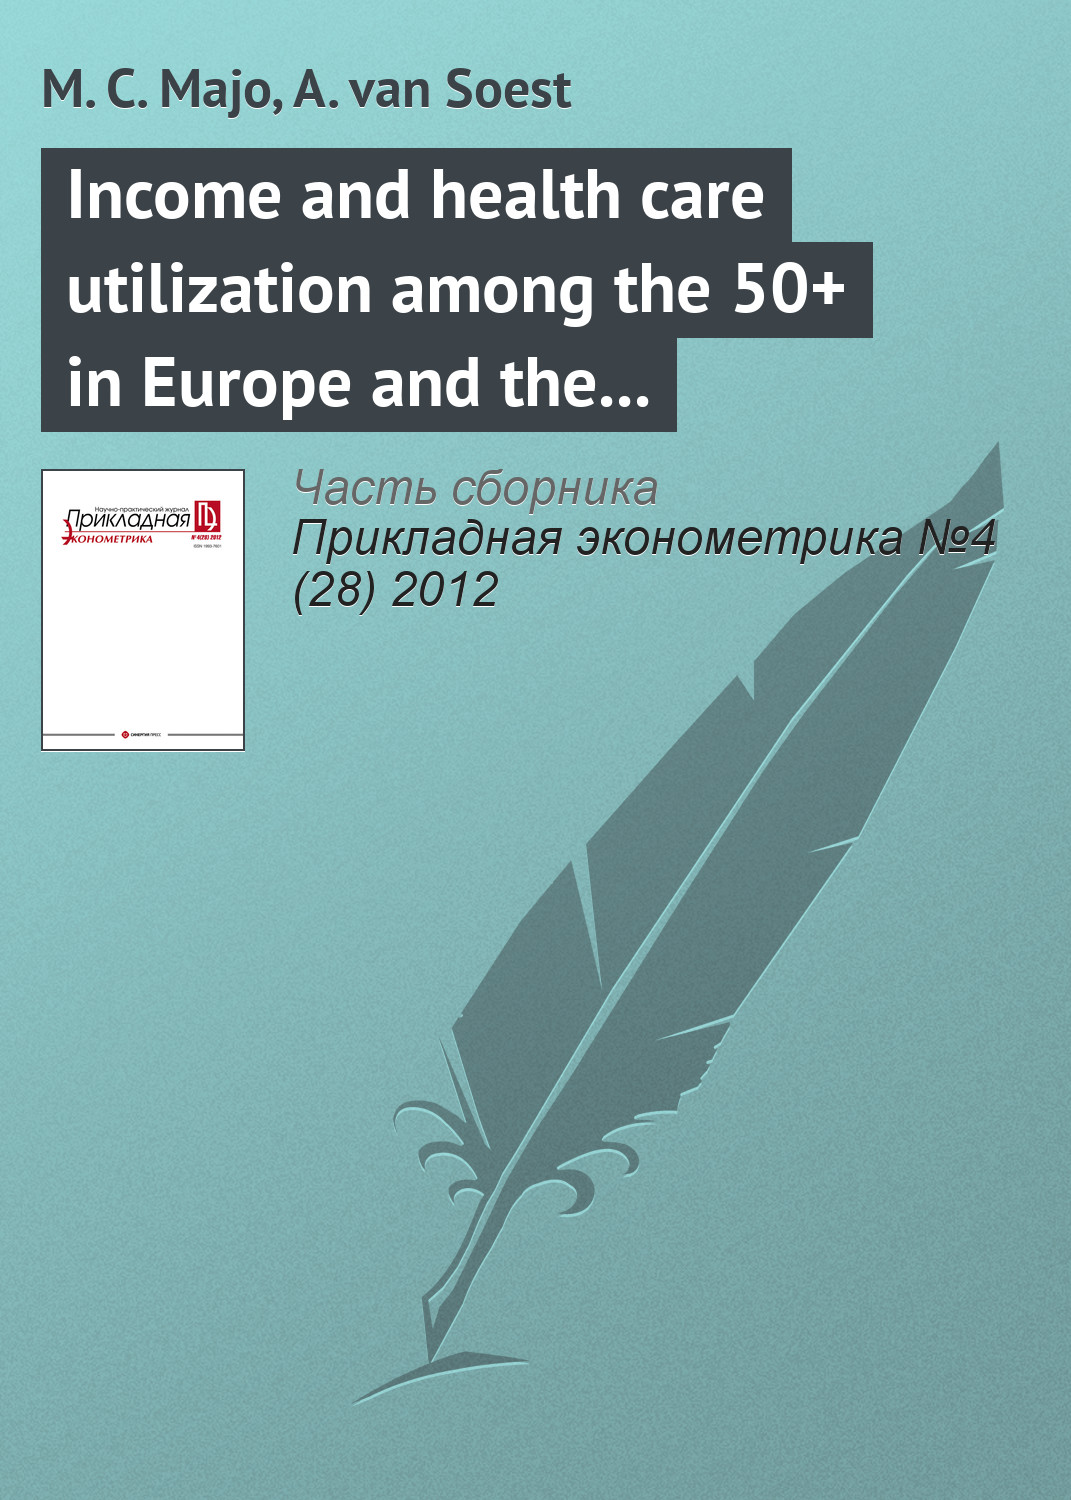 М. С. Majo Income and health care utilization among the 50+ in Europe and the US utilization of fly ash in mine stowing